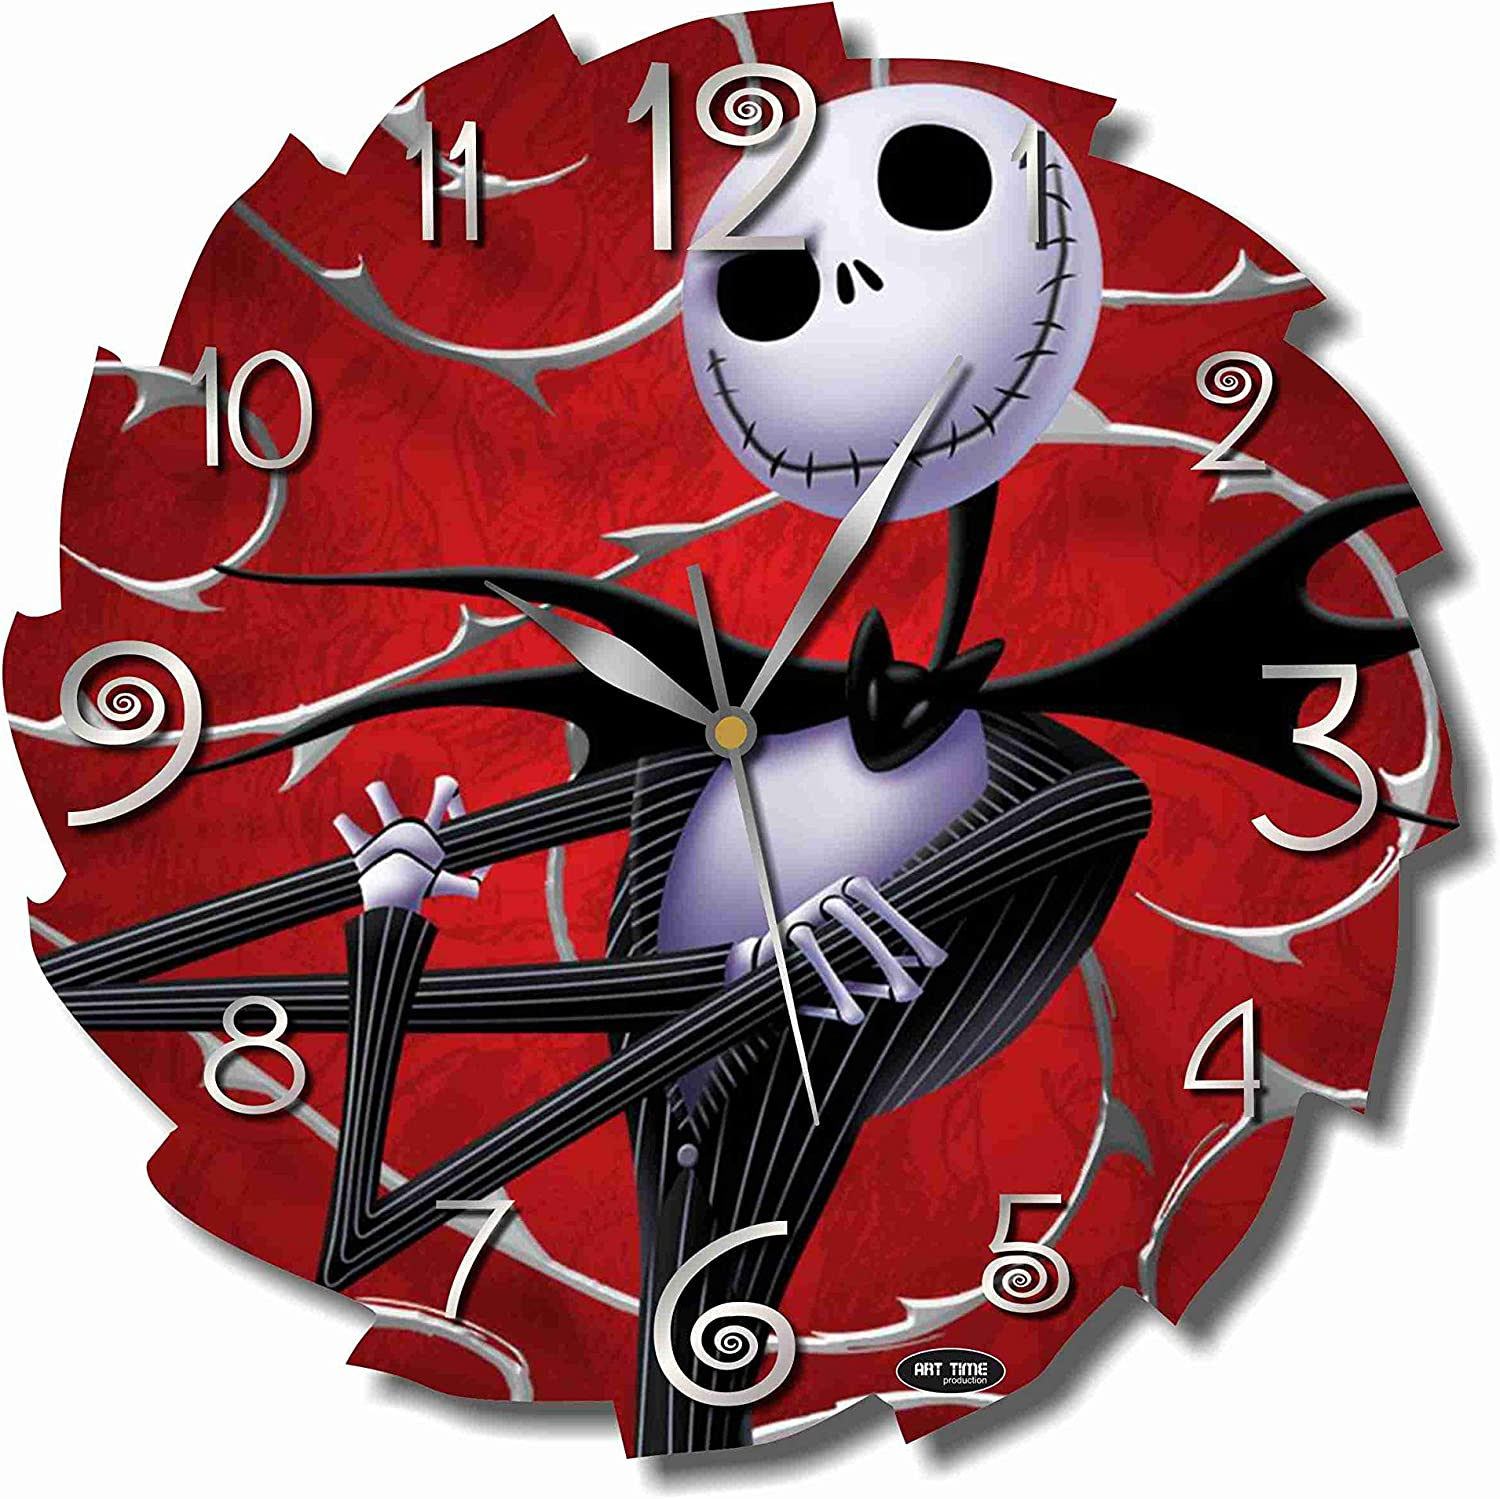 A picture of the nightmare before christmas clock to better elaborate Cartoon Clocks: some of the most intriguing 2020